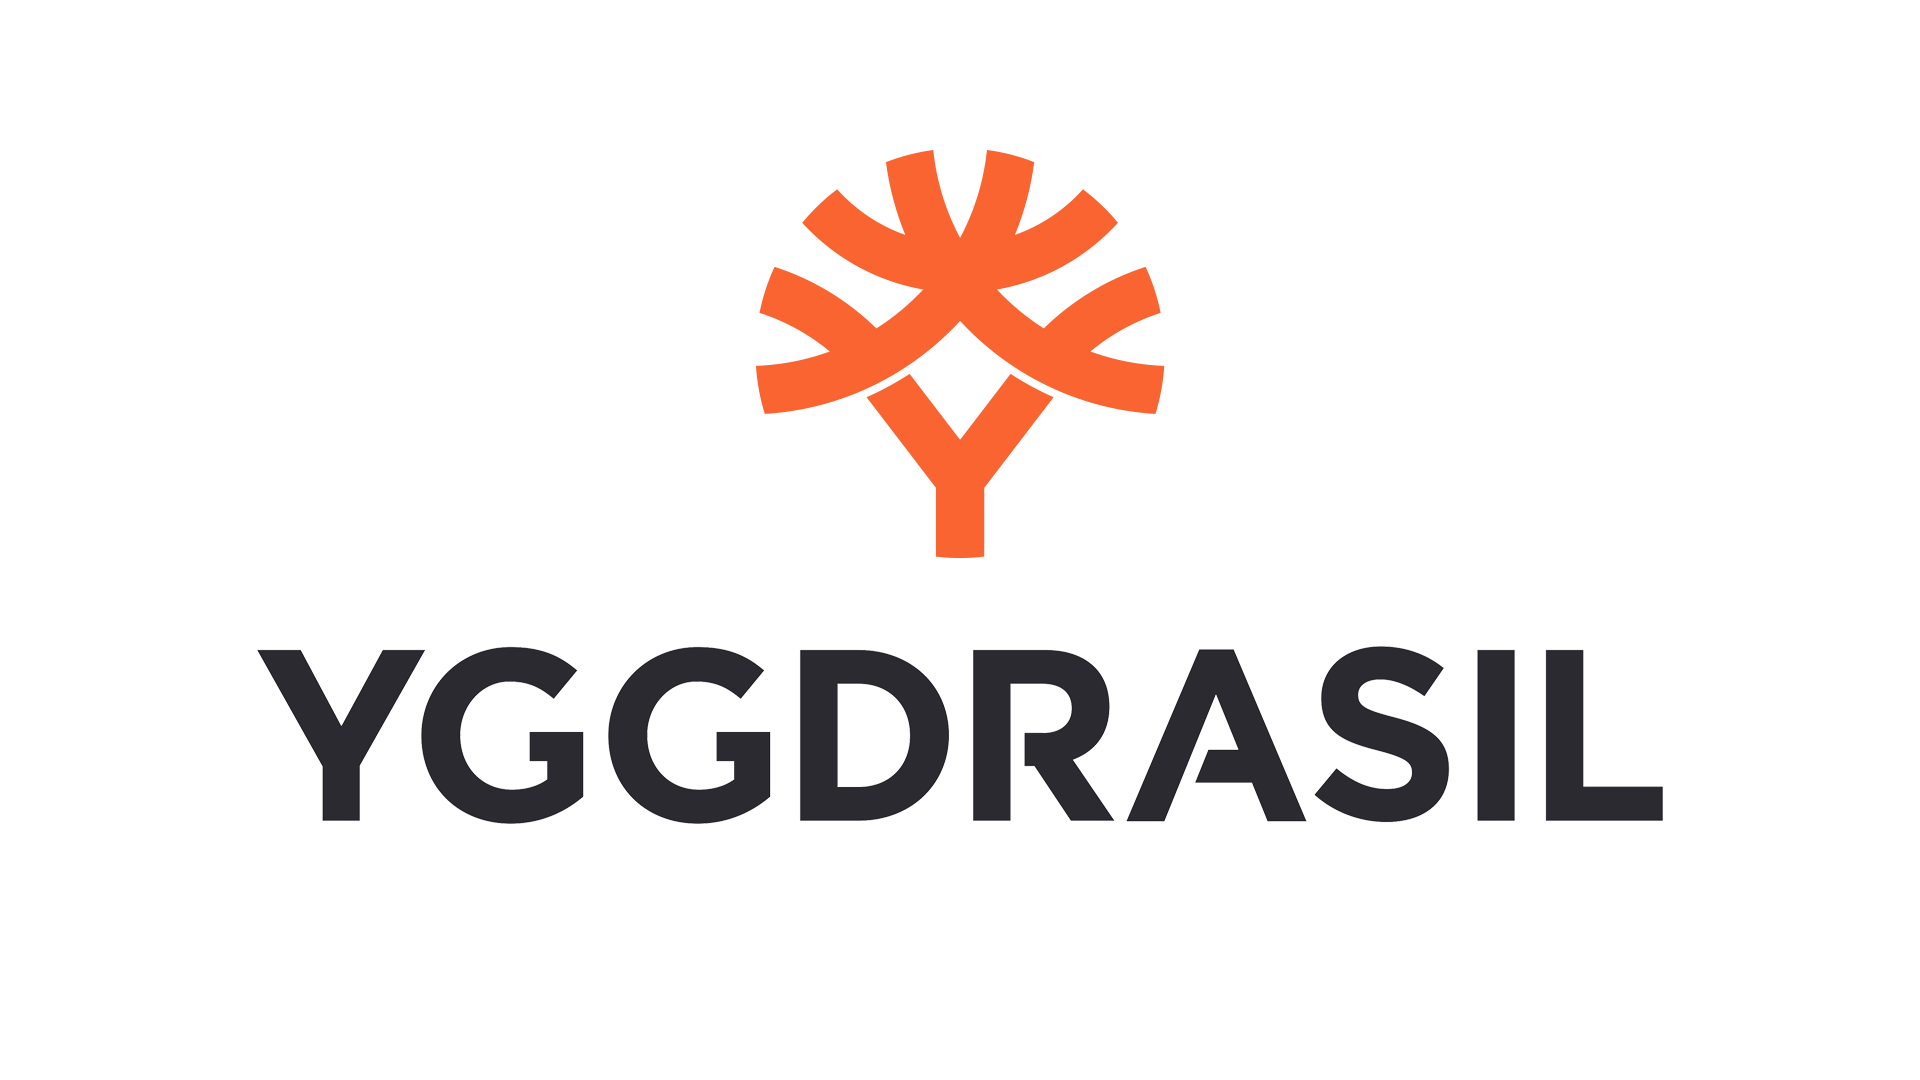 Yggdrasil adds flexibility to its franchise